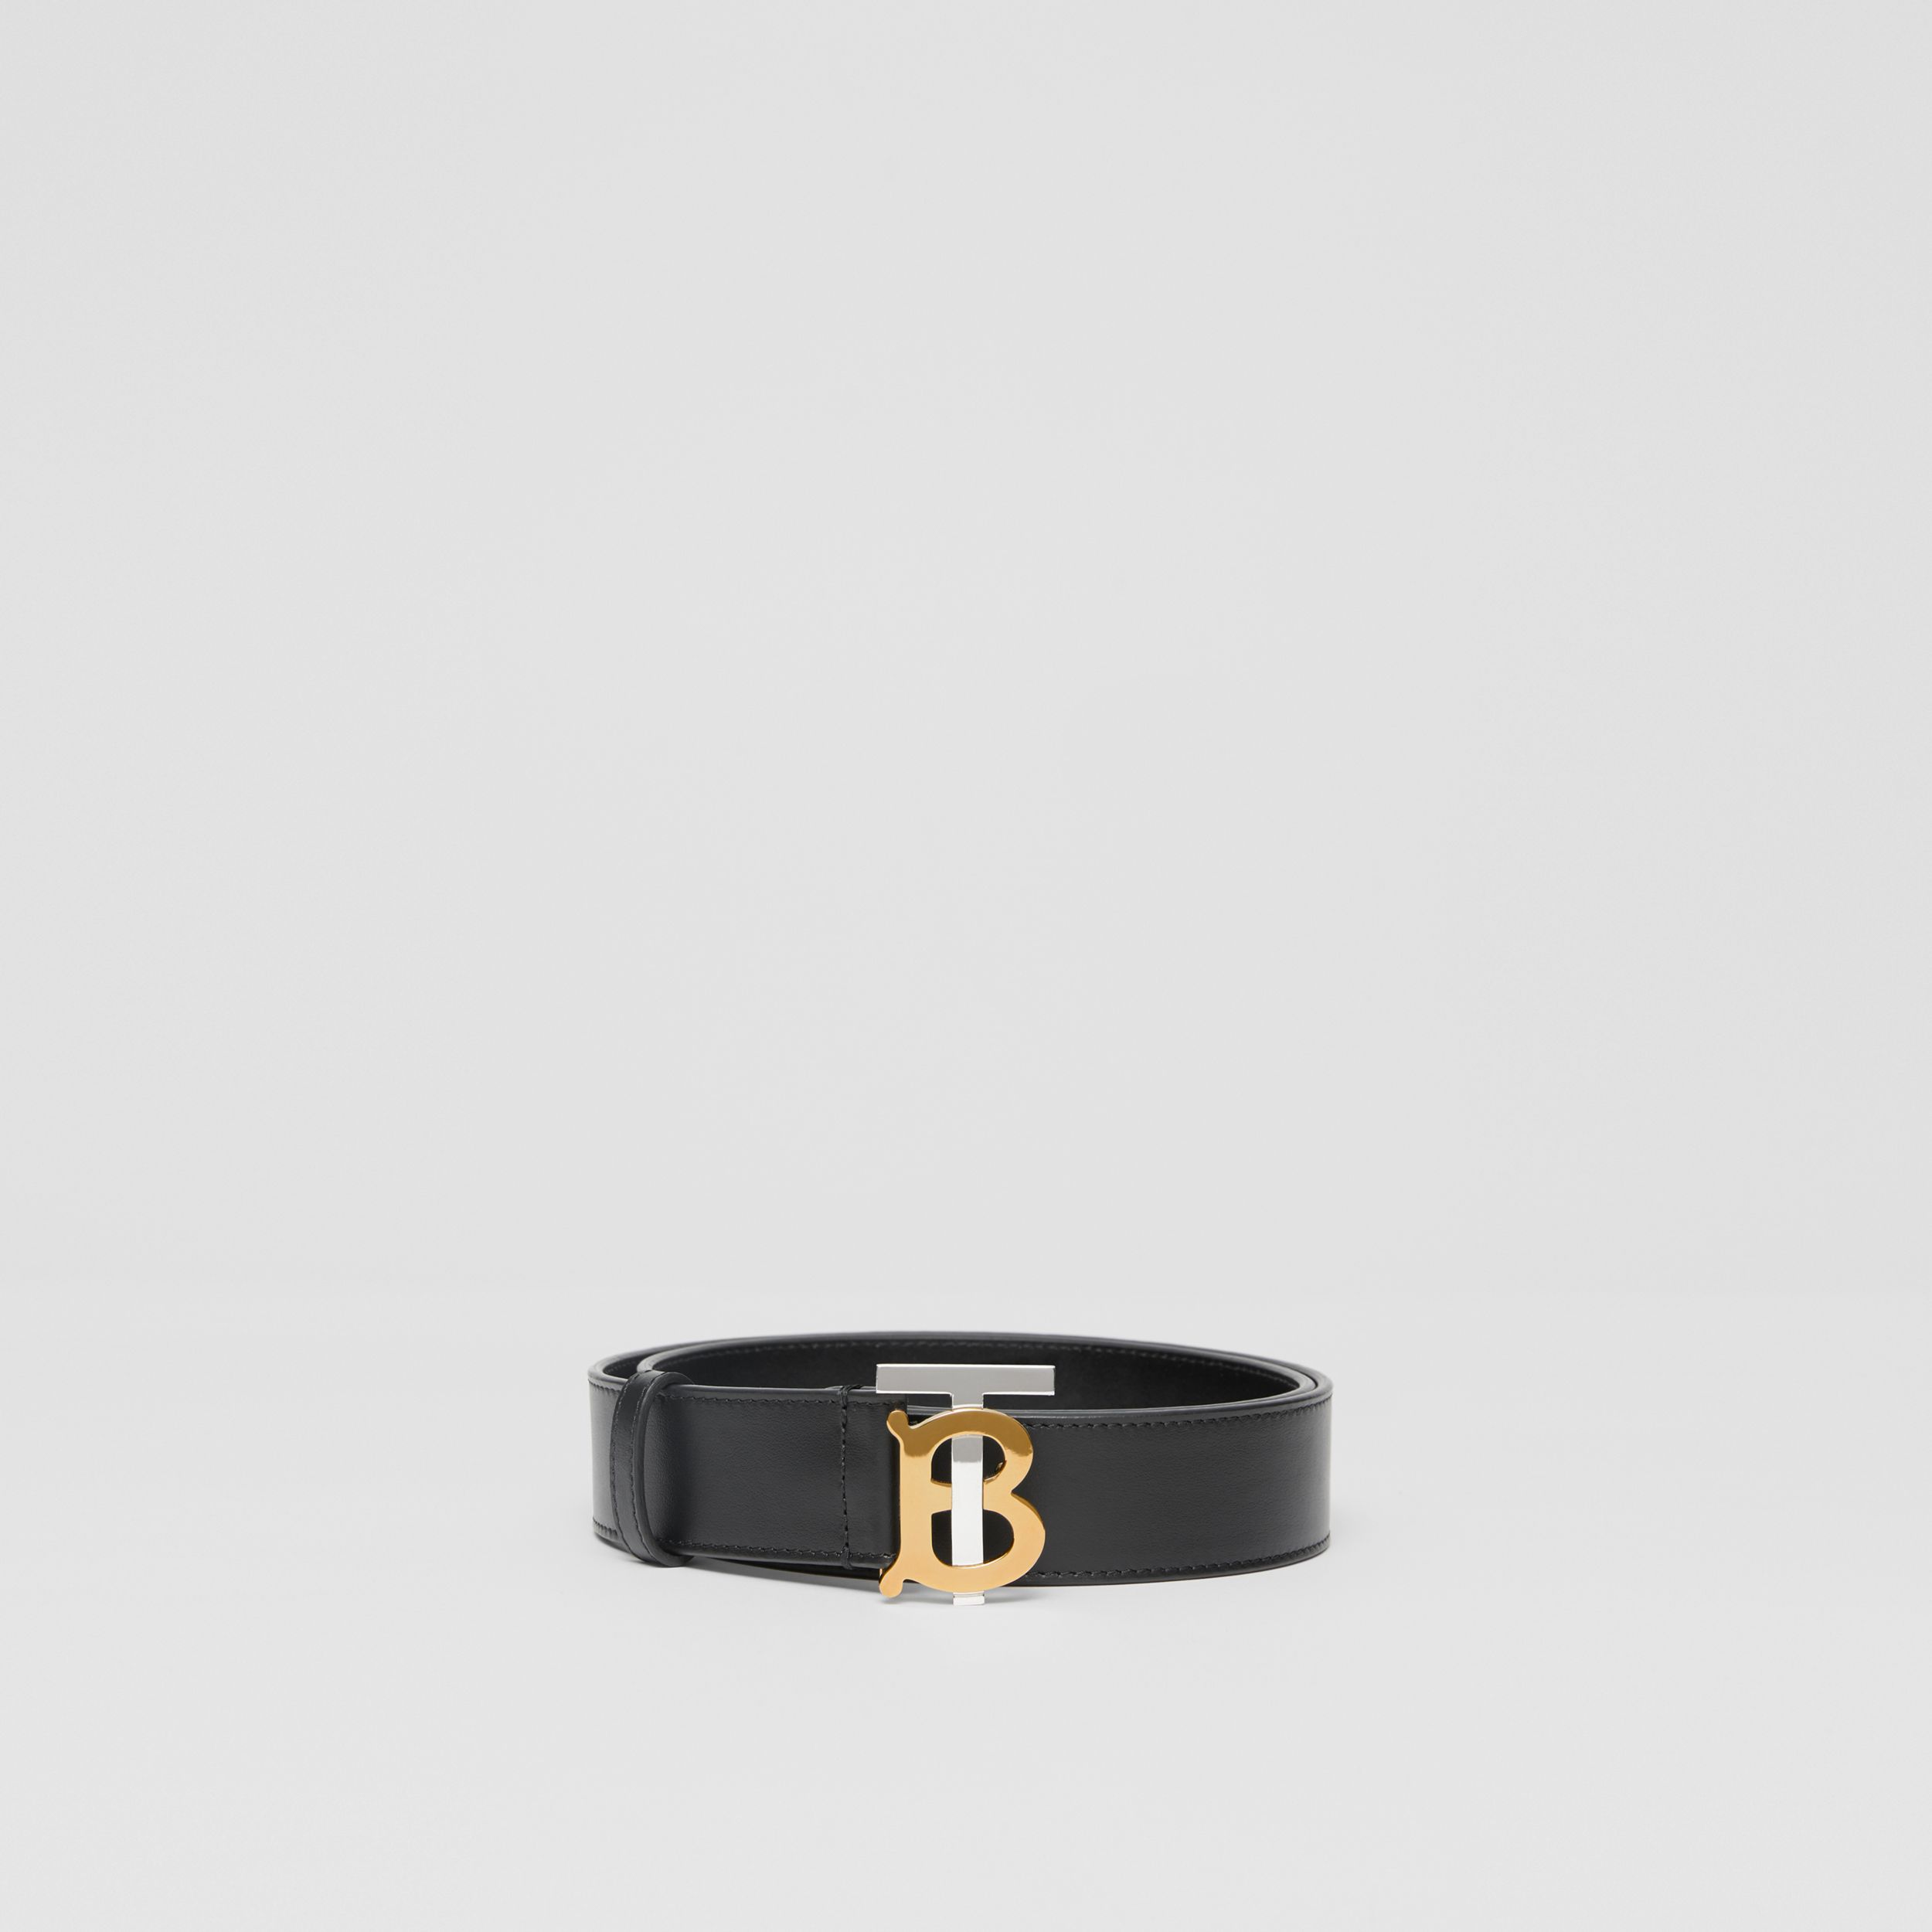 Two-tone Monogram Motif Leather Belt in Black - Men | Burberry Canada - 4